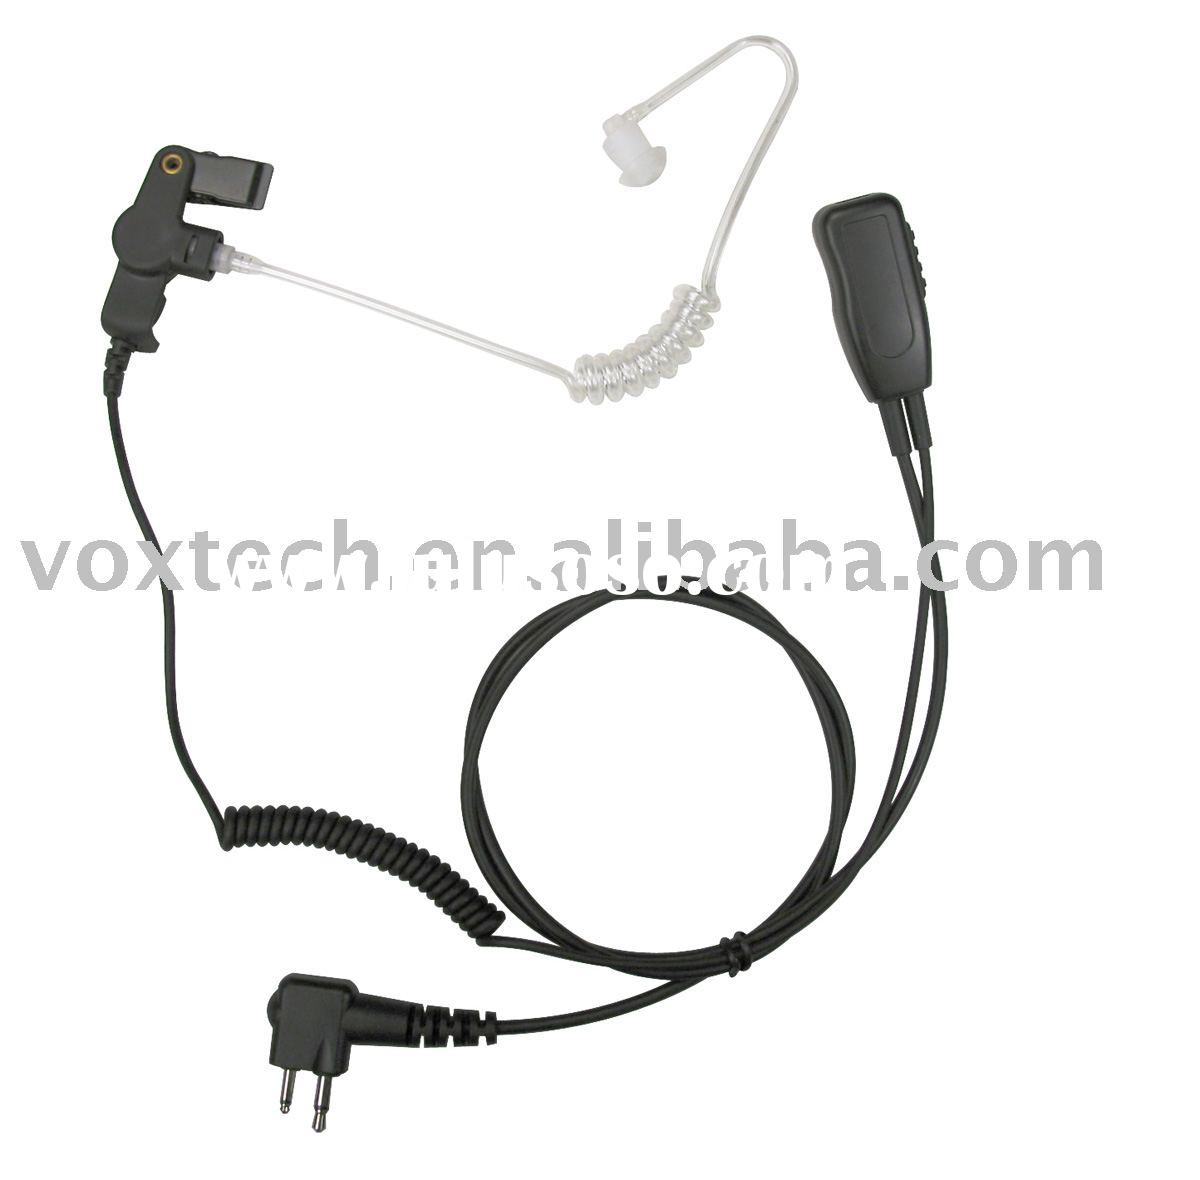 Acoustic Tube for Two Way Radio/Two Way Radio Accessories(ACH2040)